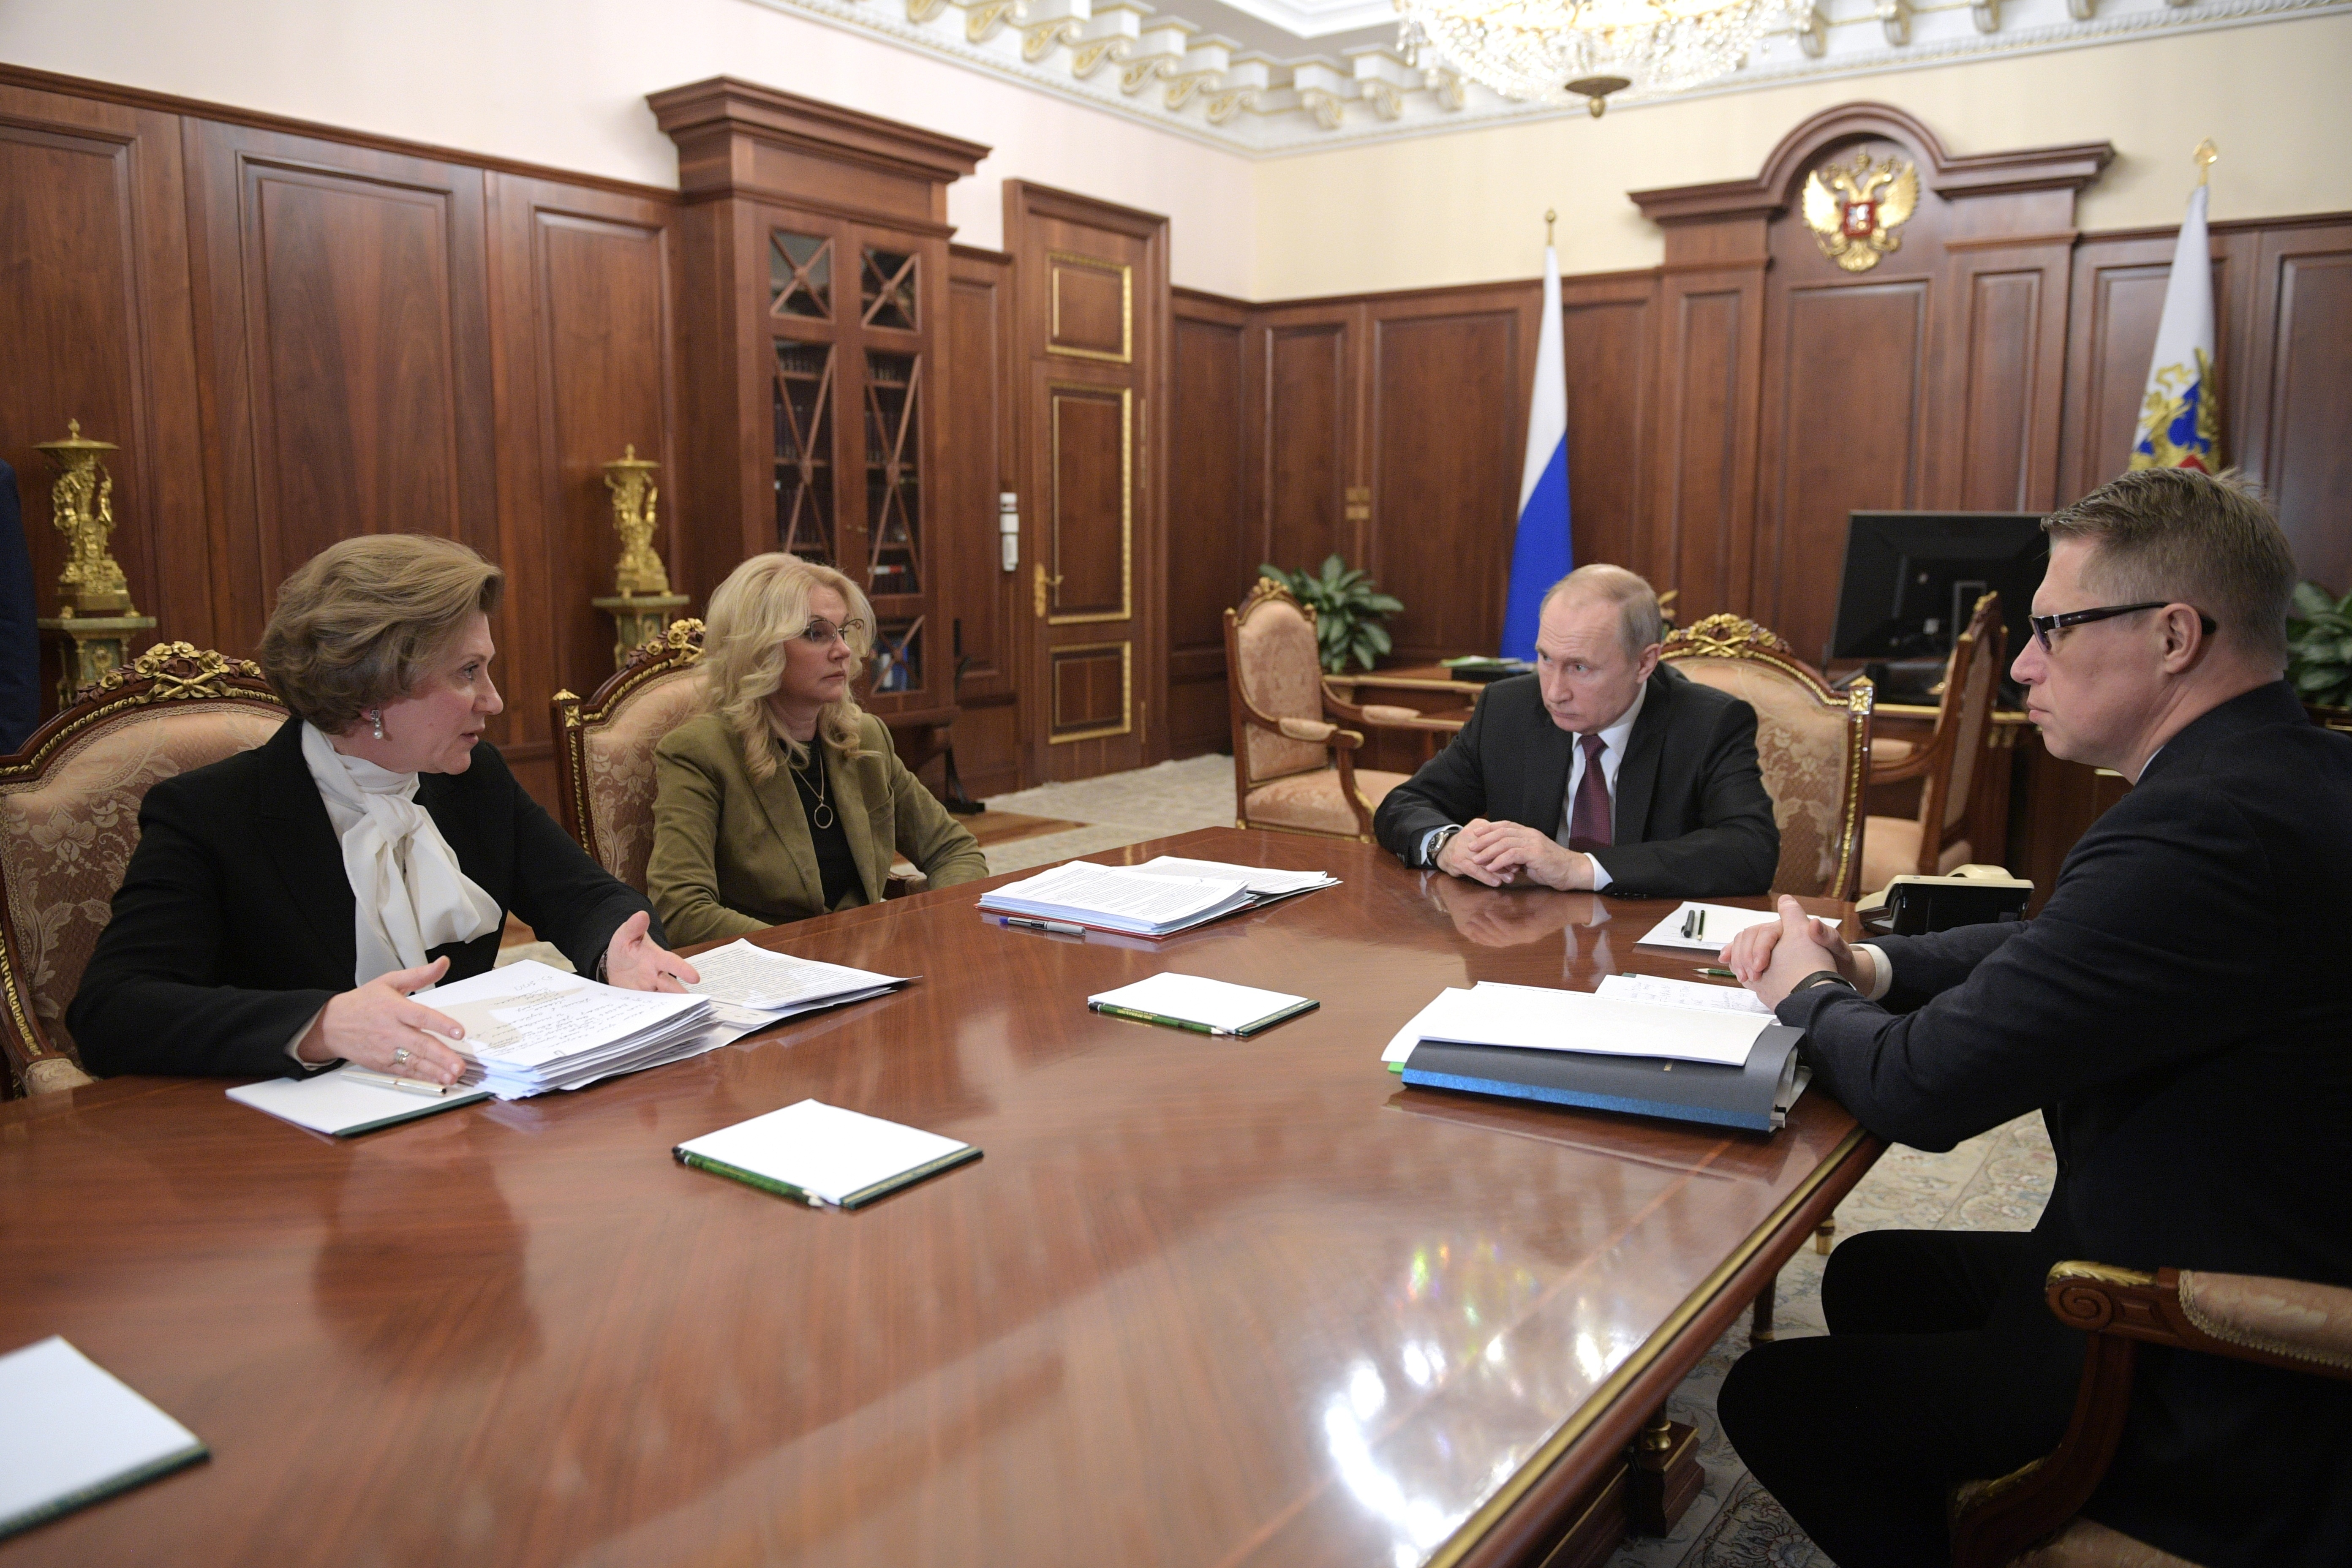 President Vladimir Putin (second right) chairs a meeting on preventing the spread of Coronavirus in Moscow, Russia, on January 29, 2020